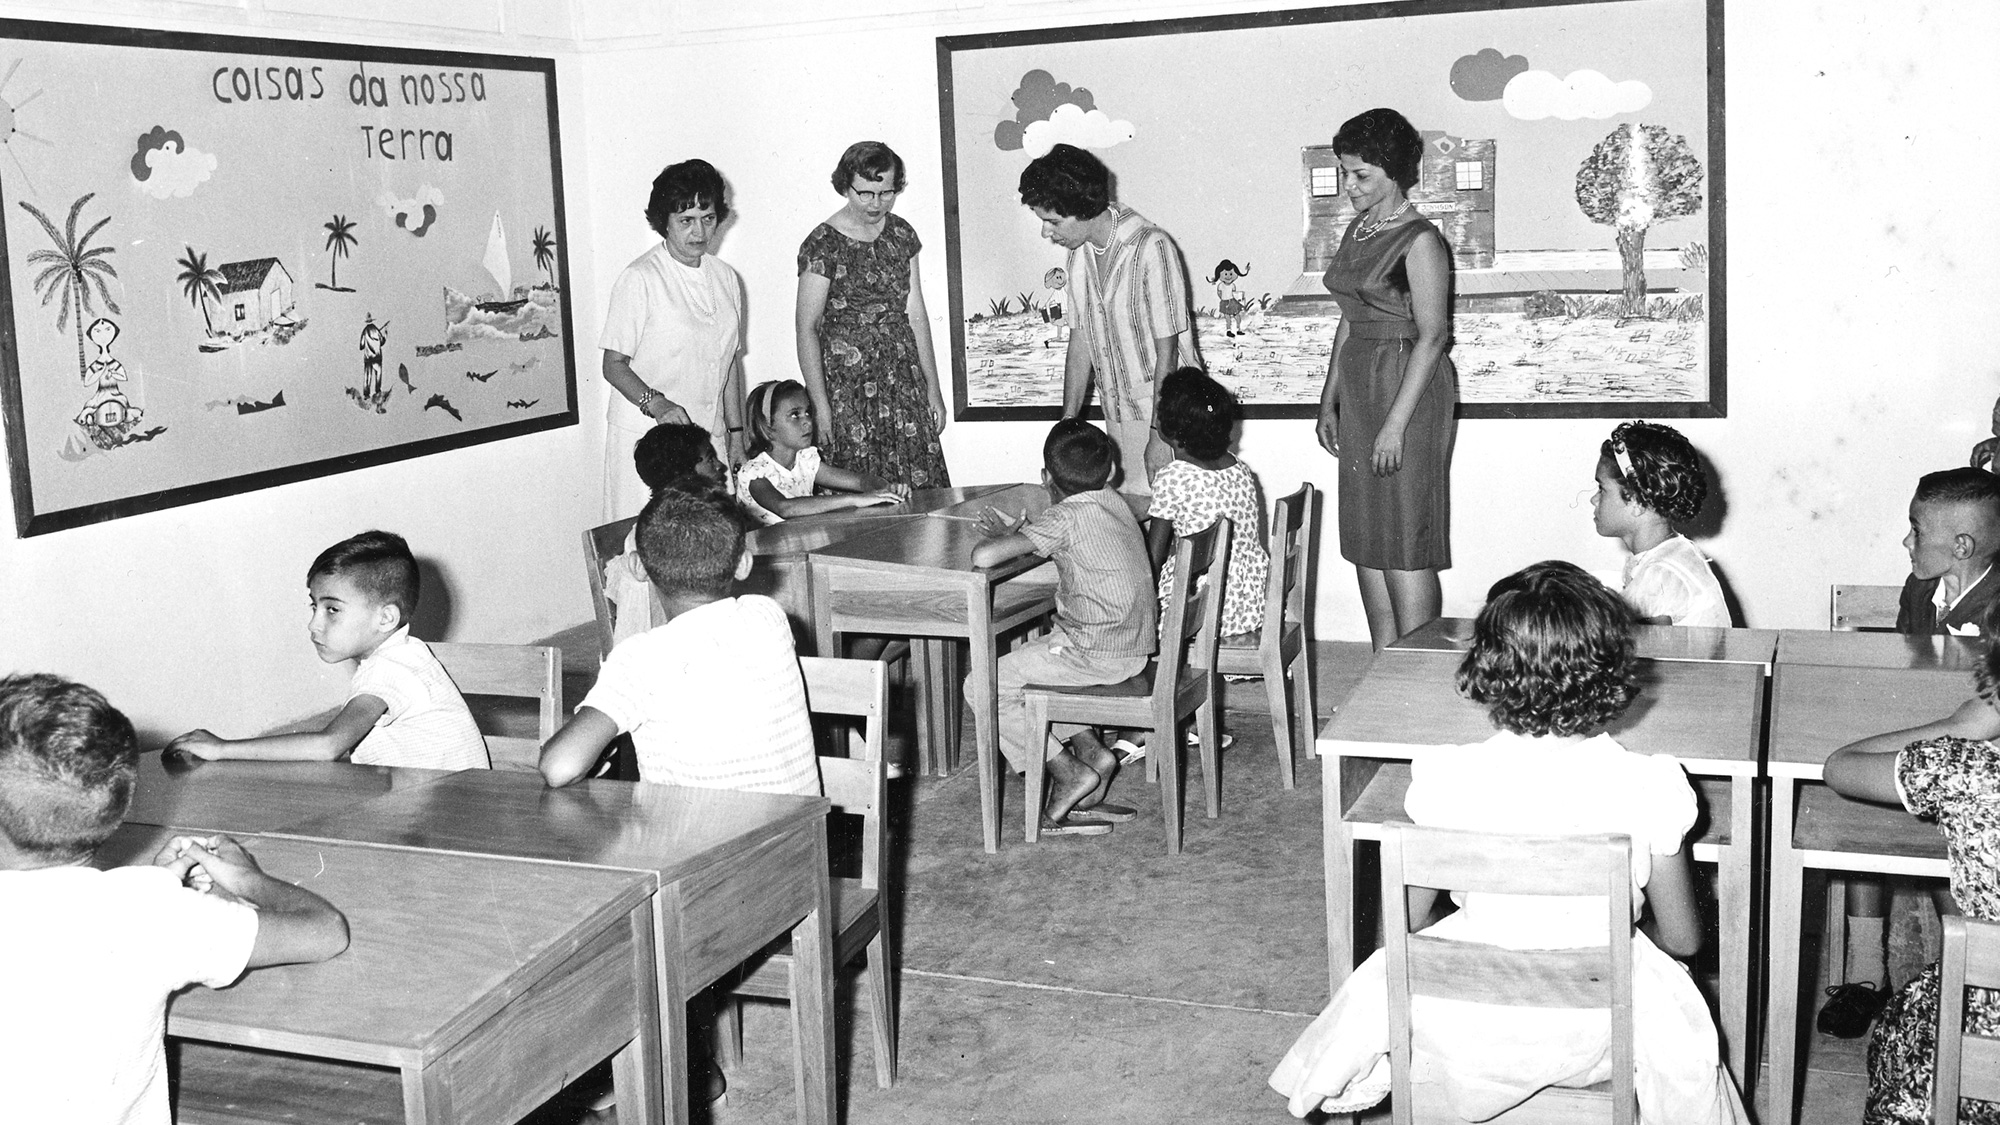 H.F. Johnson jr. vestigde de Escola Johnson in 1960